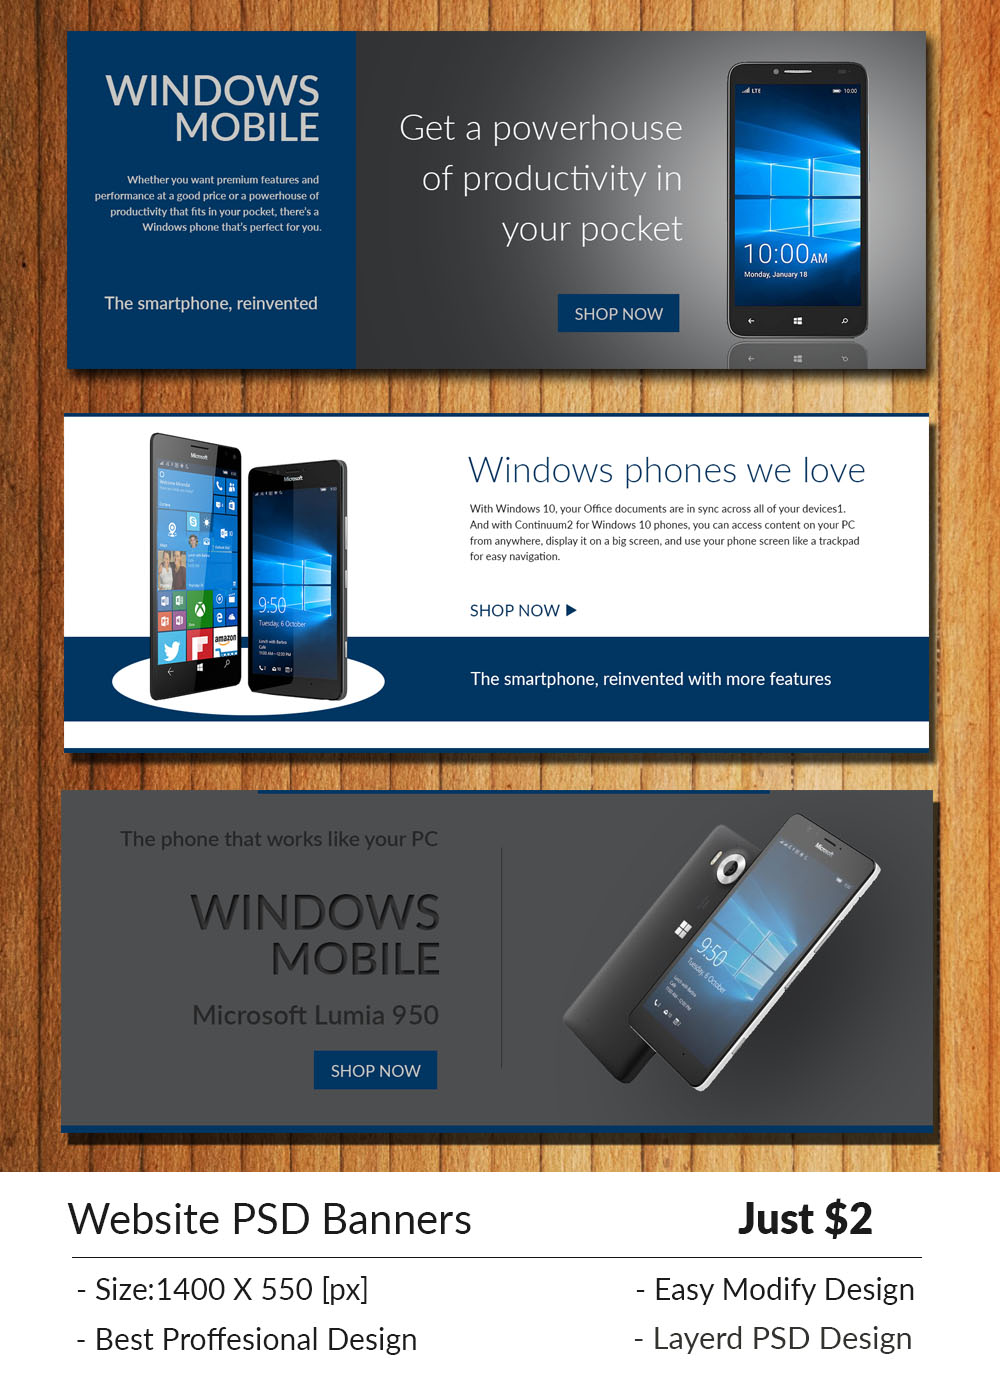 website psd banners